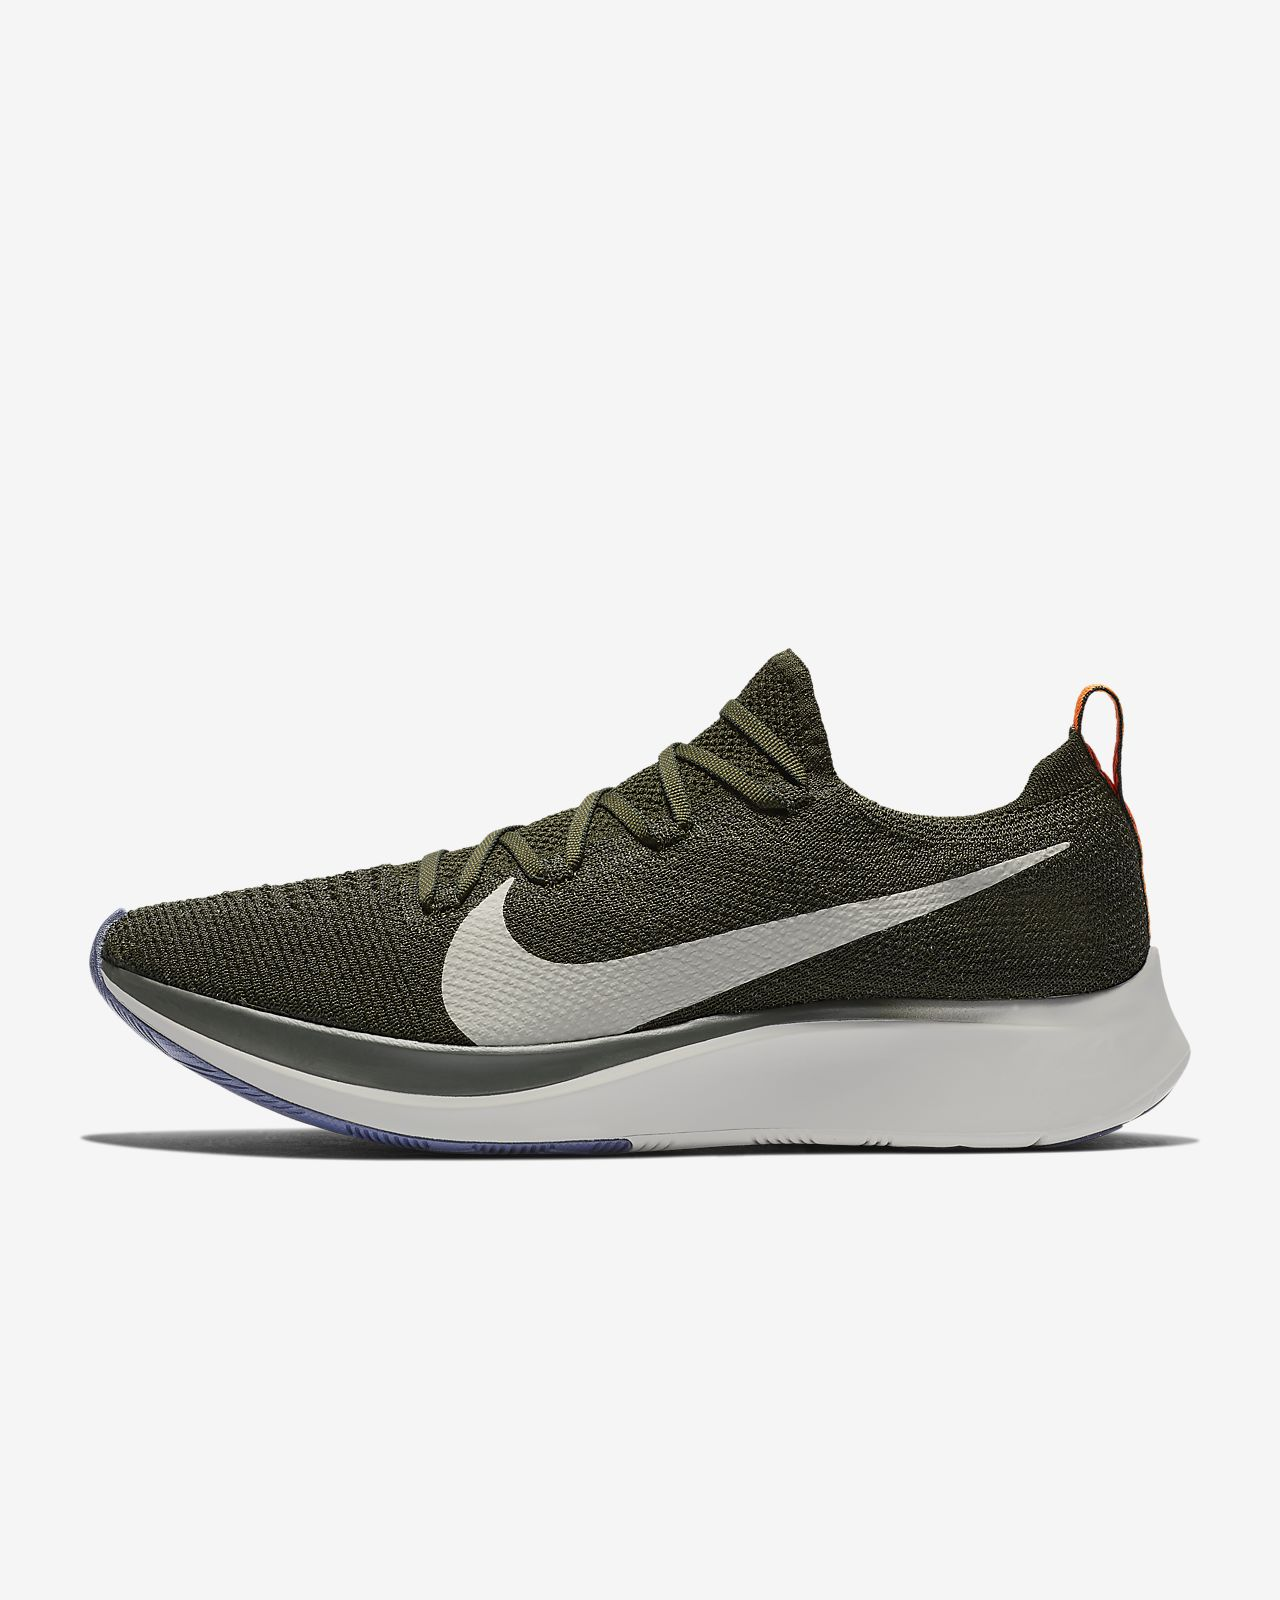 c5748826a Nike Zoom Fly Flyknit Men's Running Shoe. Nike.com